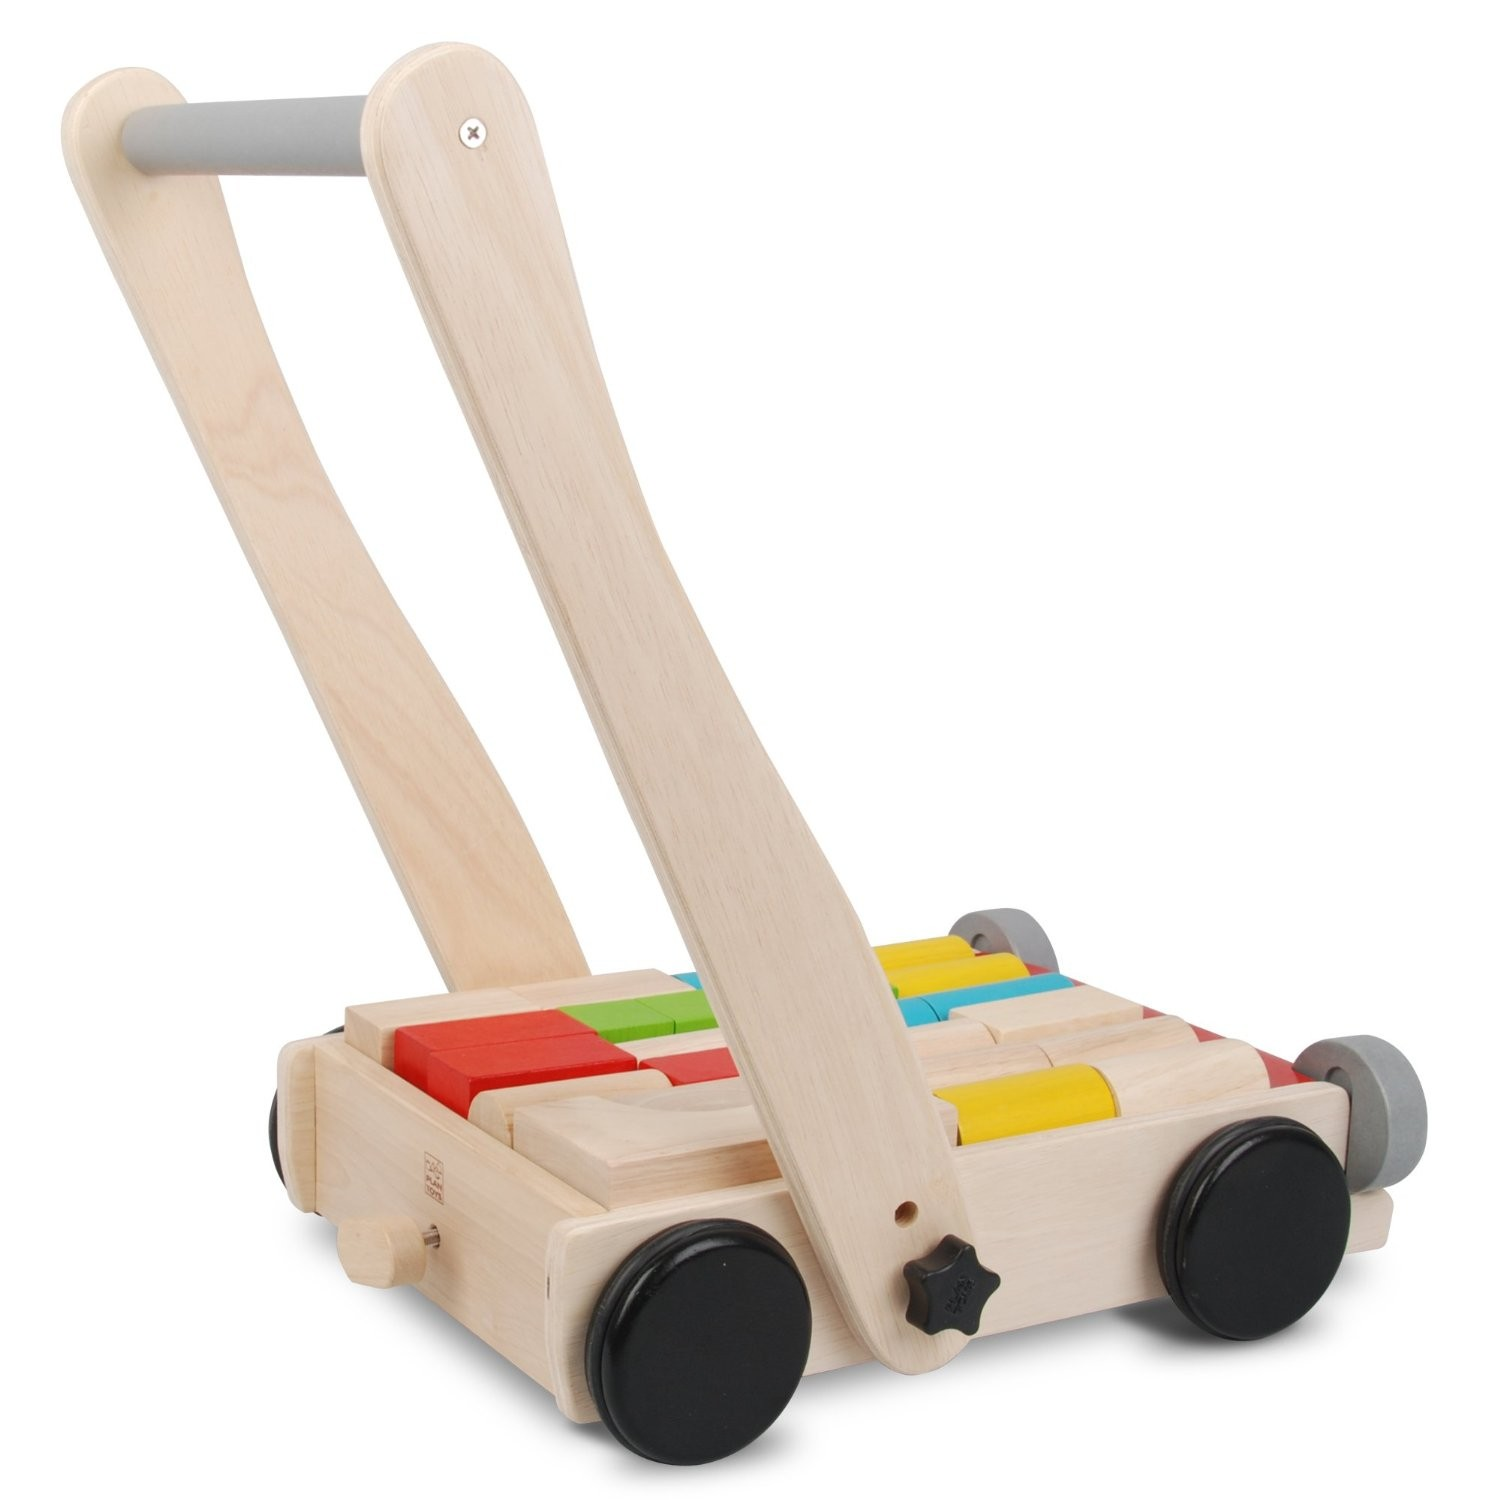 Wooden Toy Plans Catalog : Plan toys baby walker